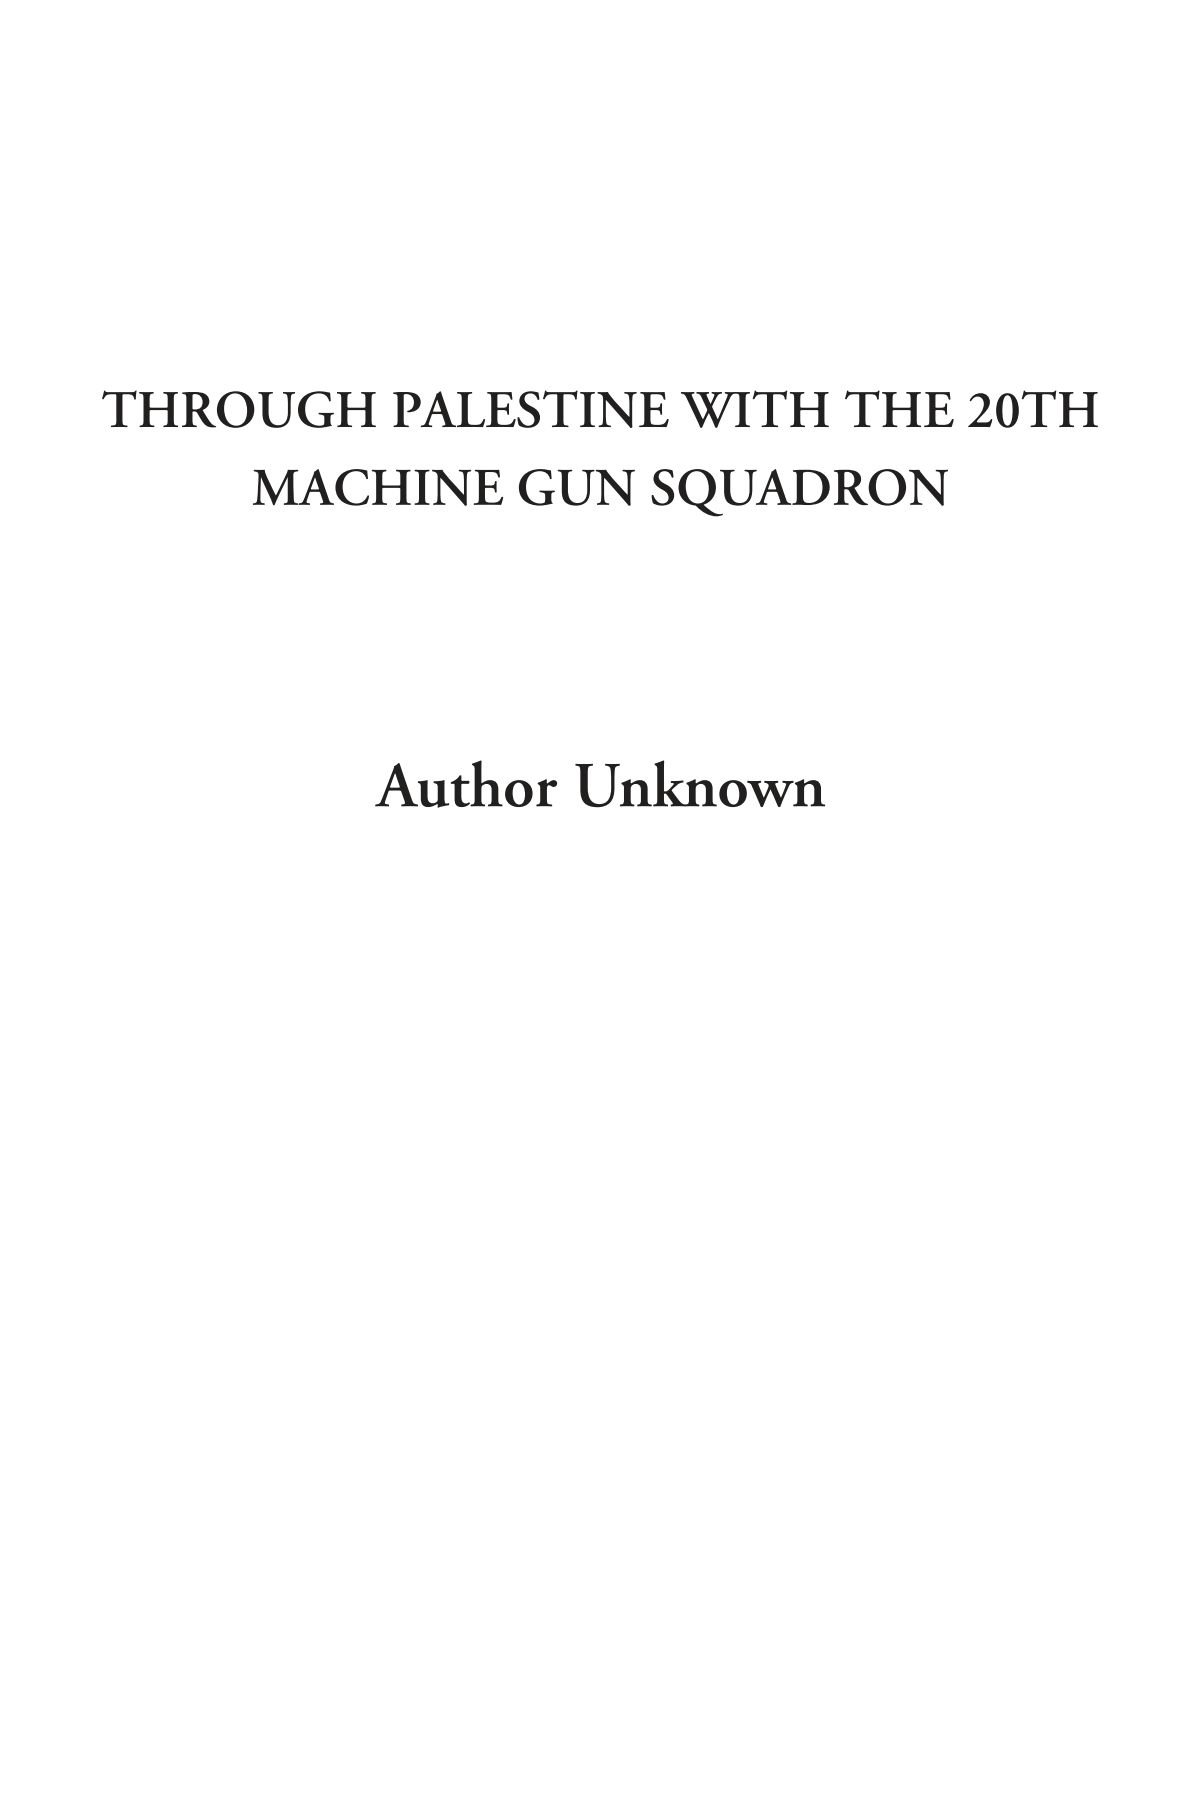 Through Palestine with the 20th Machine Gun Squadron pdf